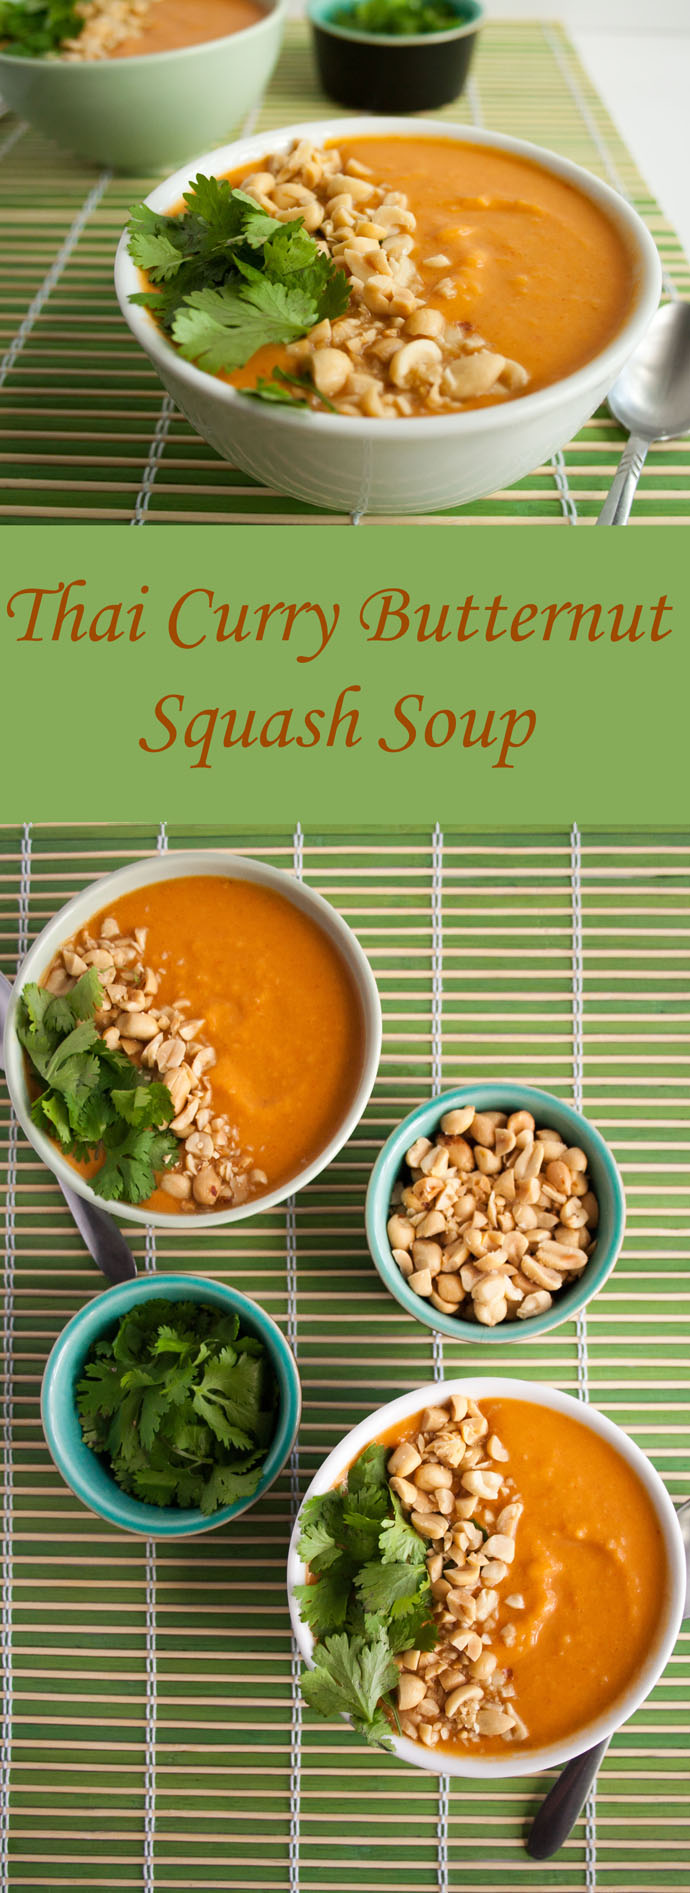 Thai Curry Butternut Squash Soup collage photo with text.